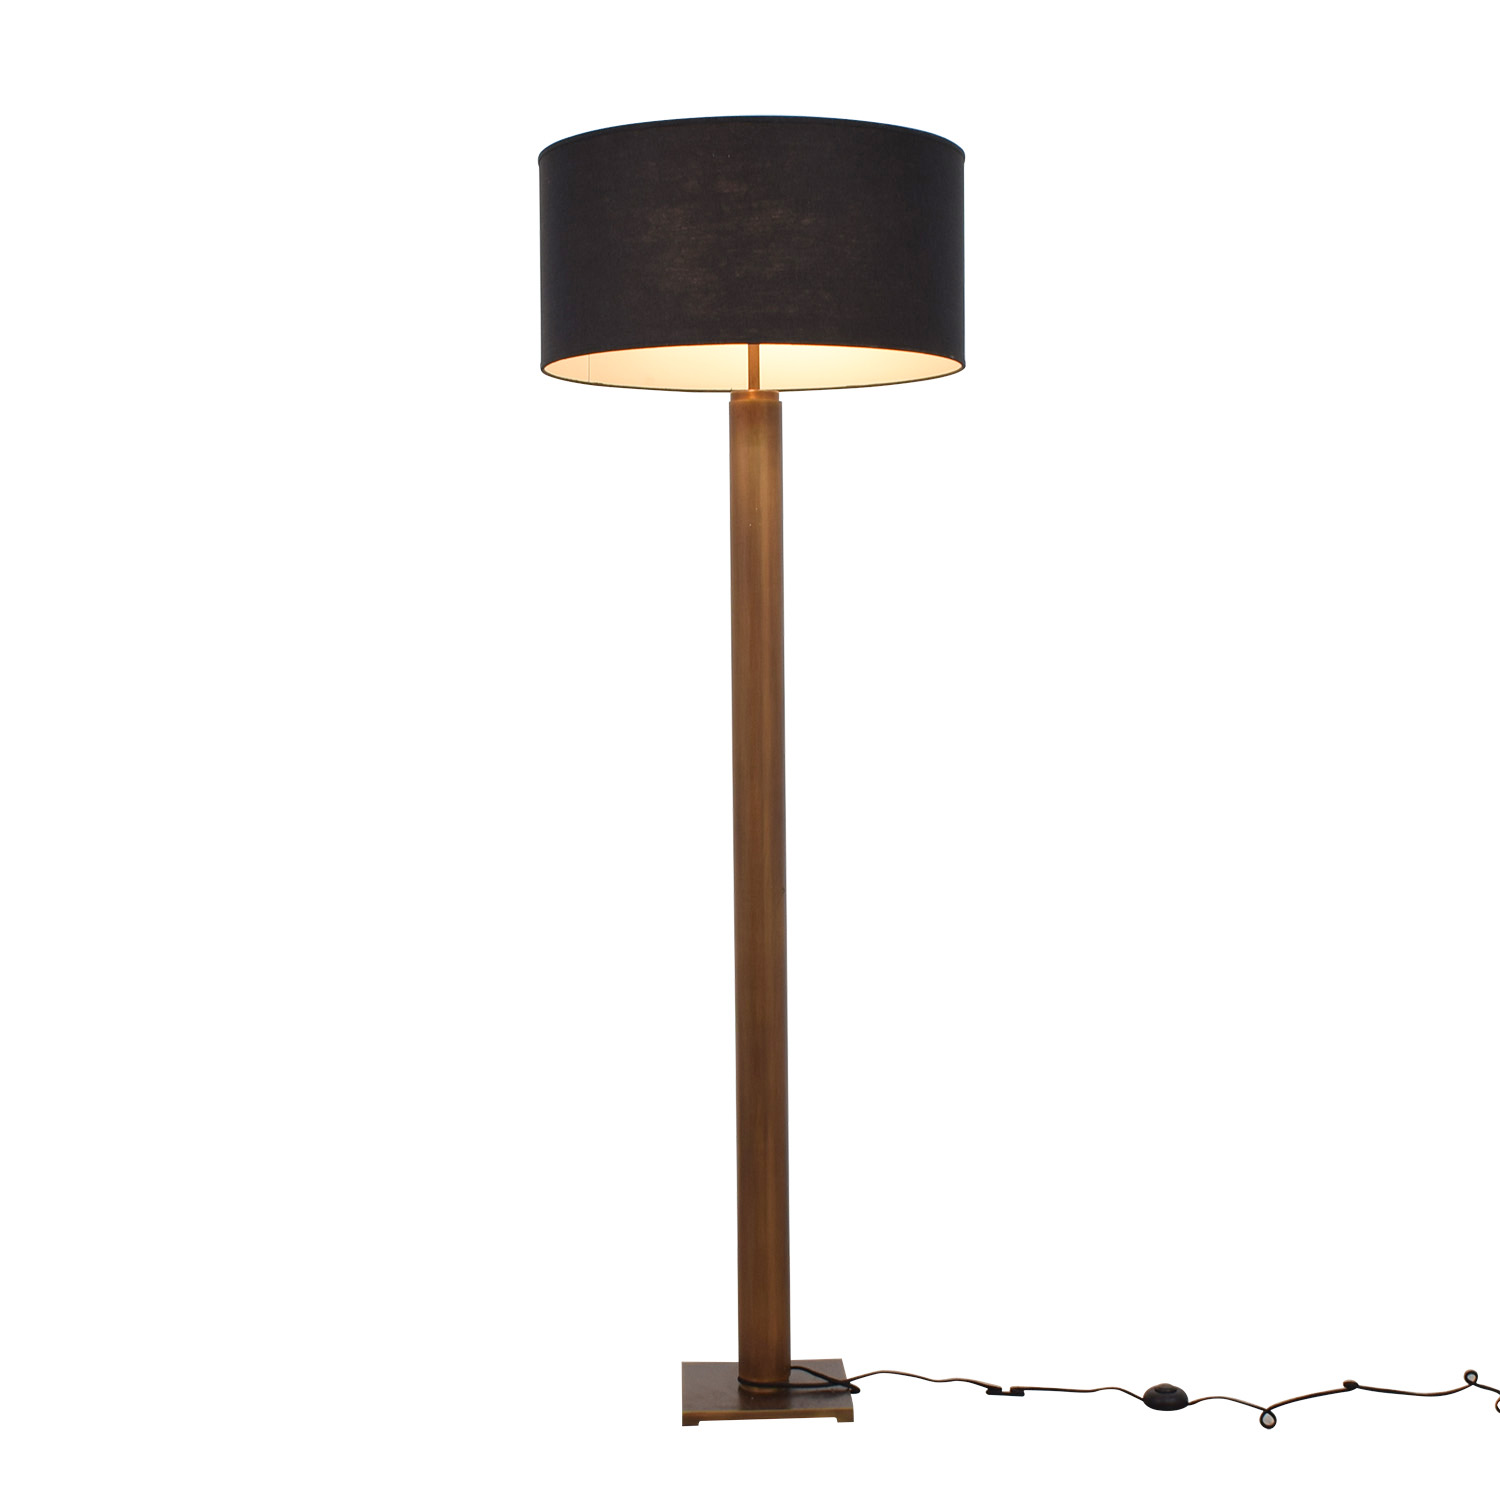 42 off marwill lighting collection marwill lighting collection buy restoration hardware restoration hardware french column bronze floor lamp online aloadofball Images